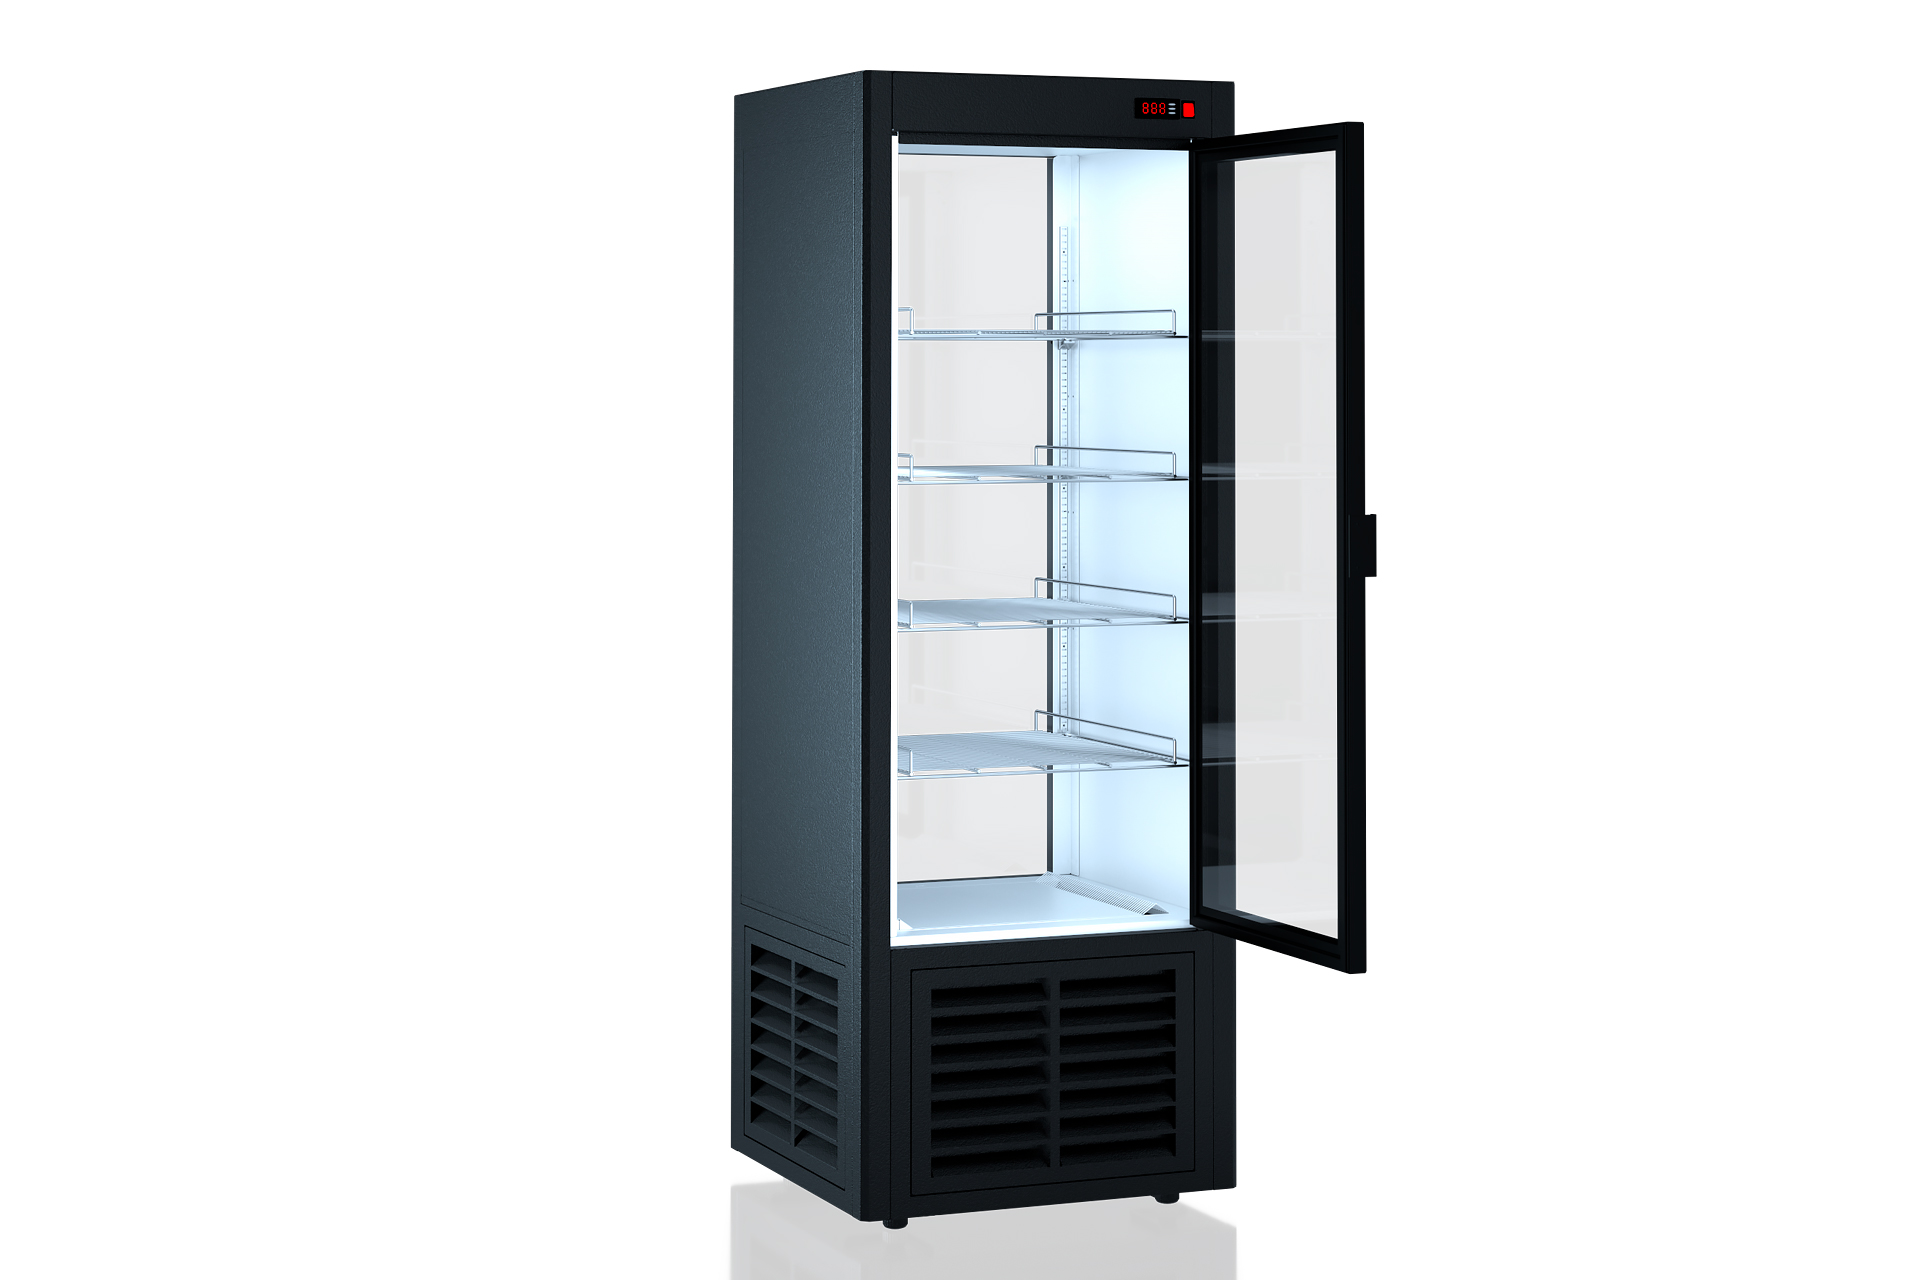 Refrigerated cabinets Kansas А2SG 070 HT 1HD 210-D600A-070 (by the seller)